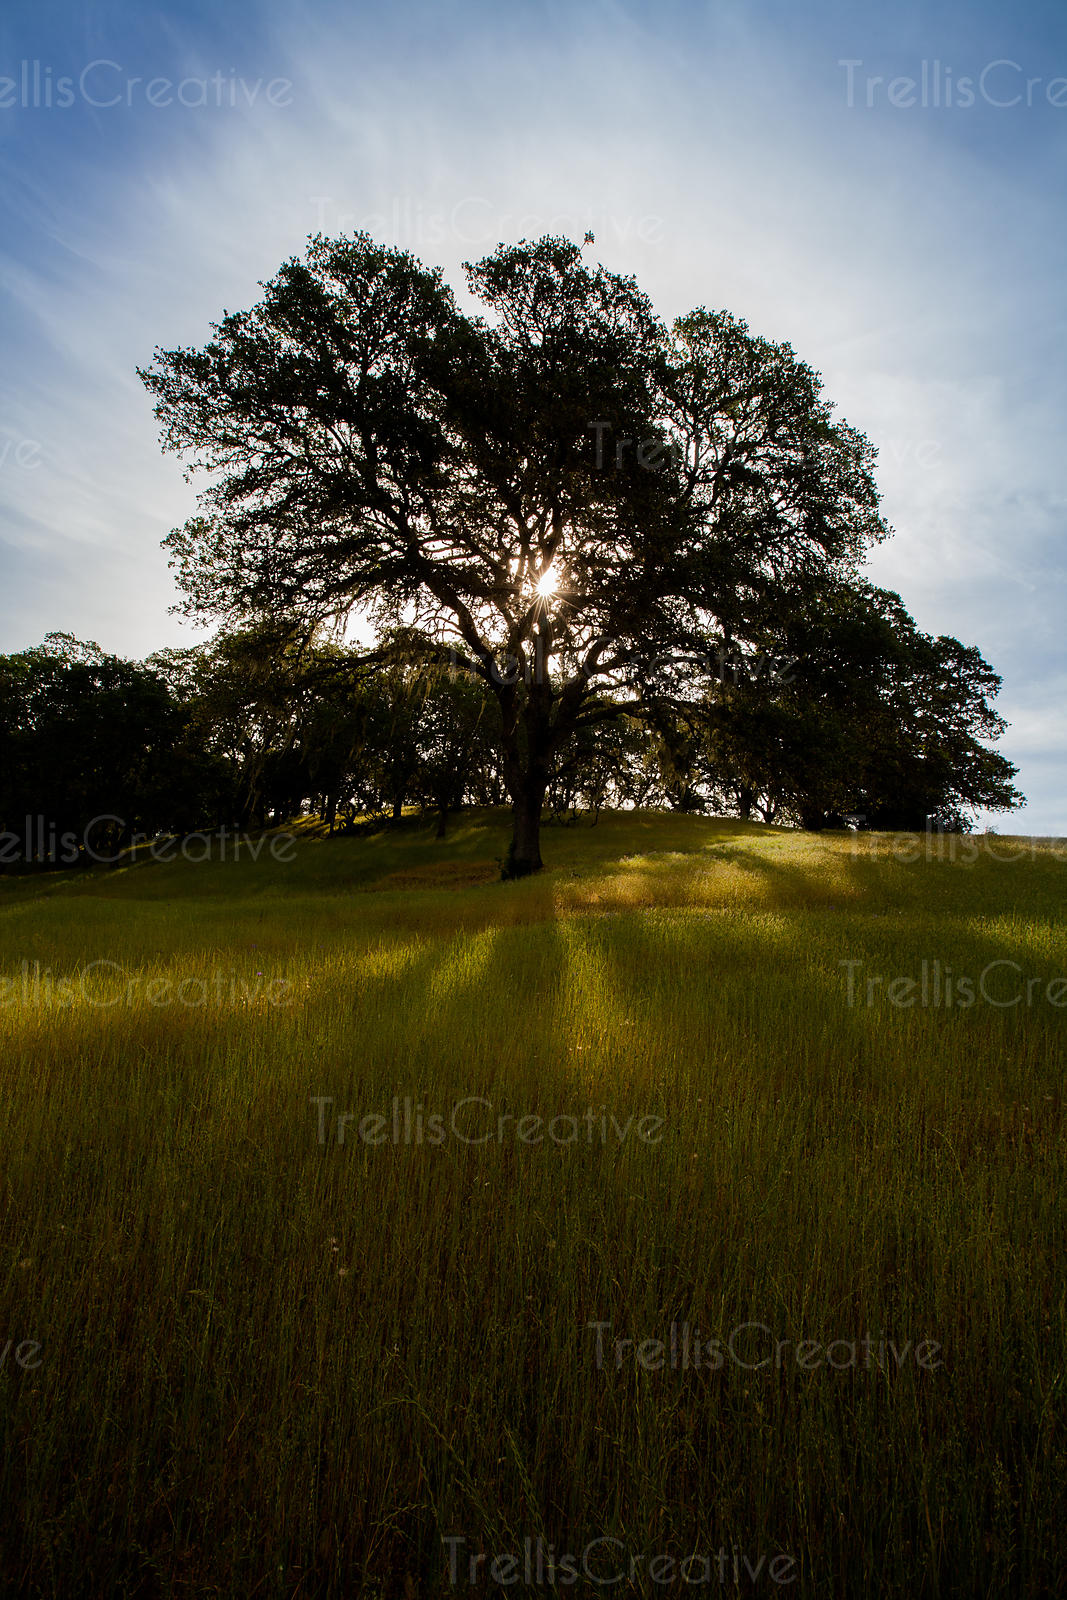 Majestic tree standing tall in the grasslands with the sun peering through in  the blue sky